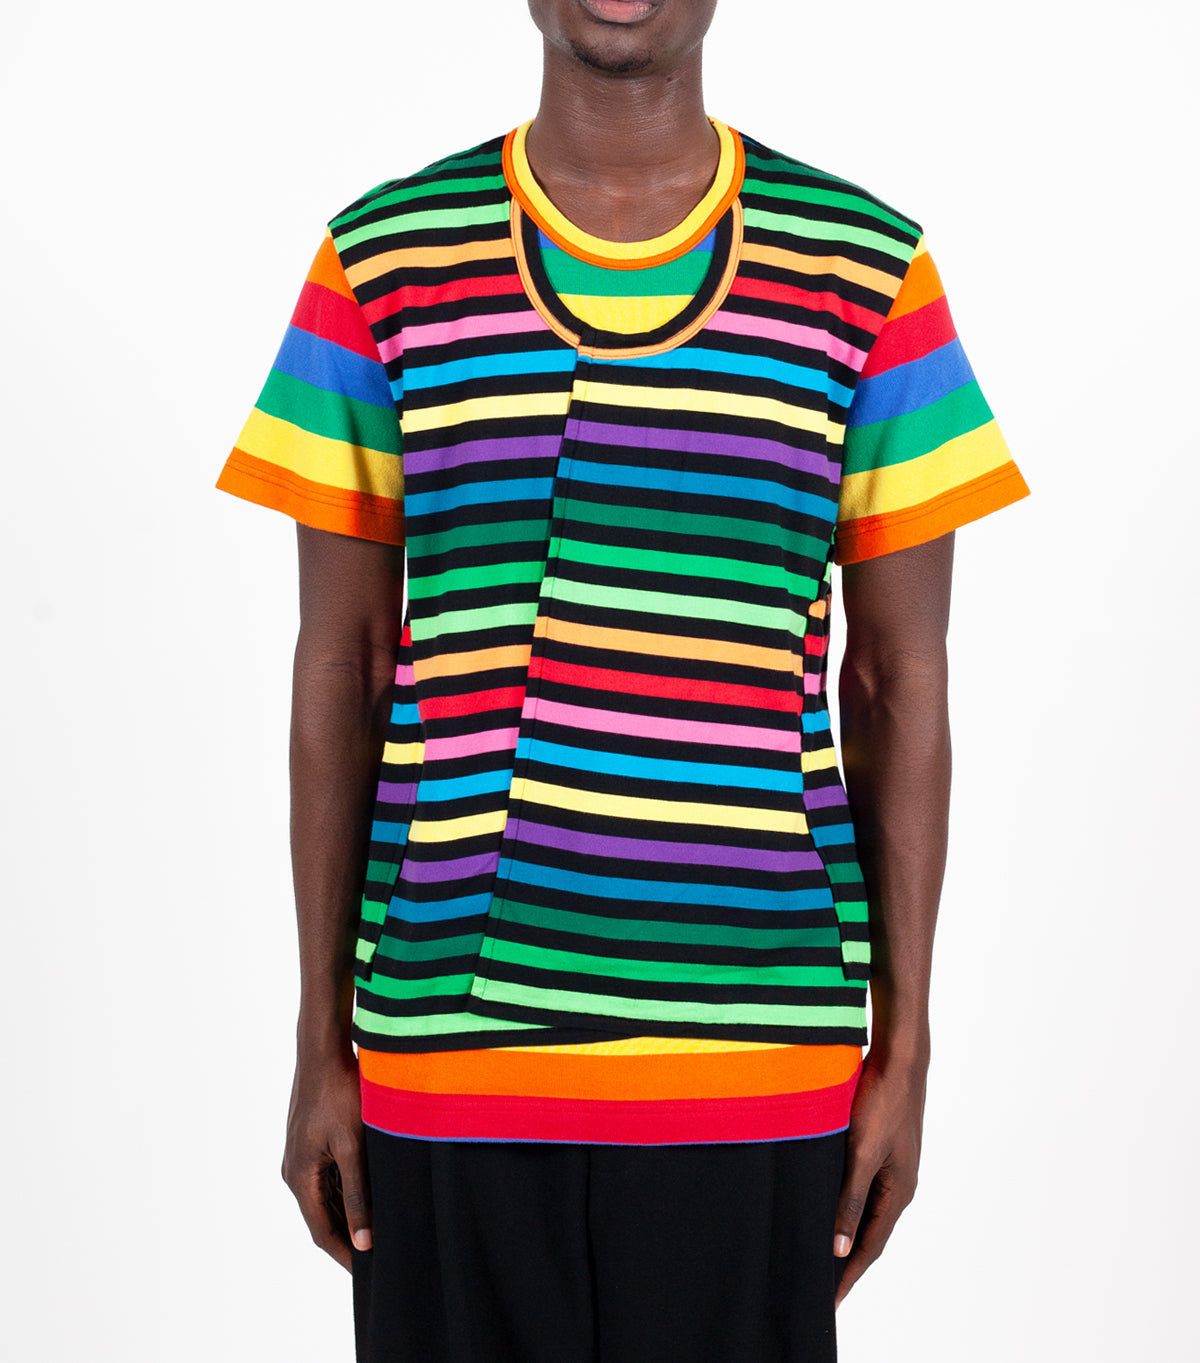 CdG Homme Plus Horizontal Stripe T-Shirt Multi Color